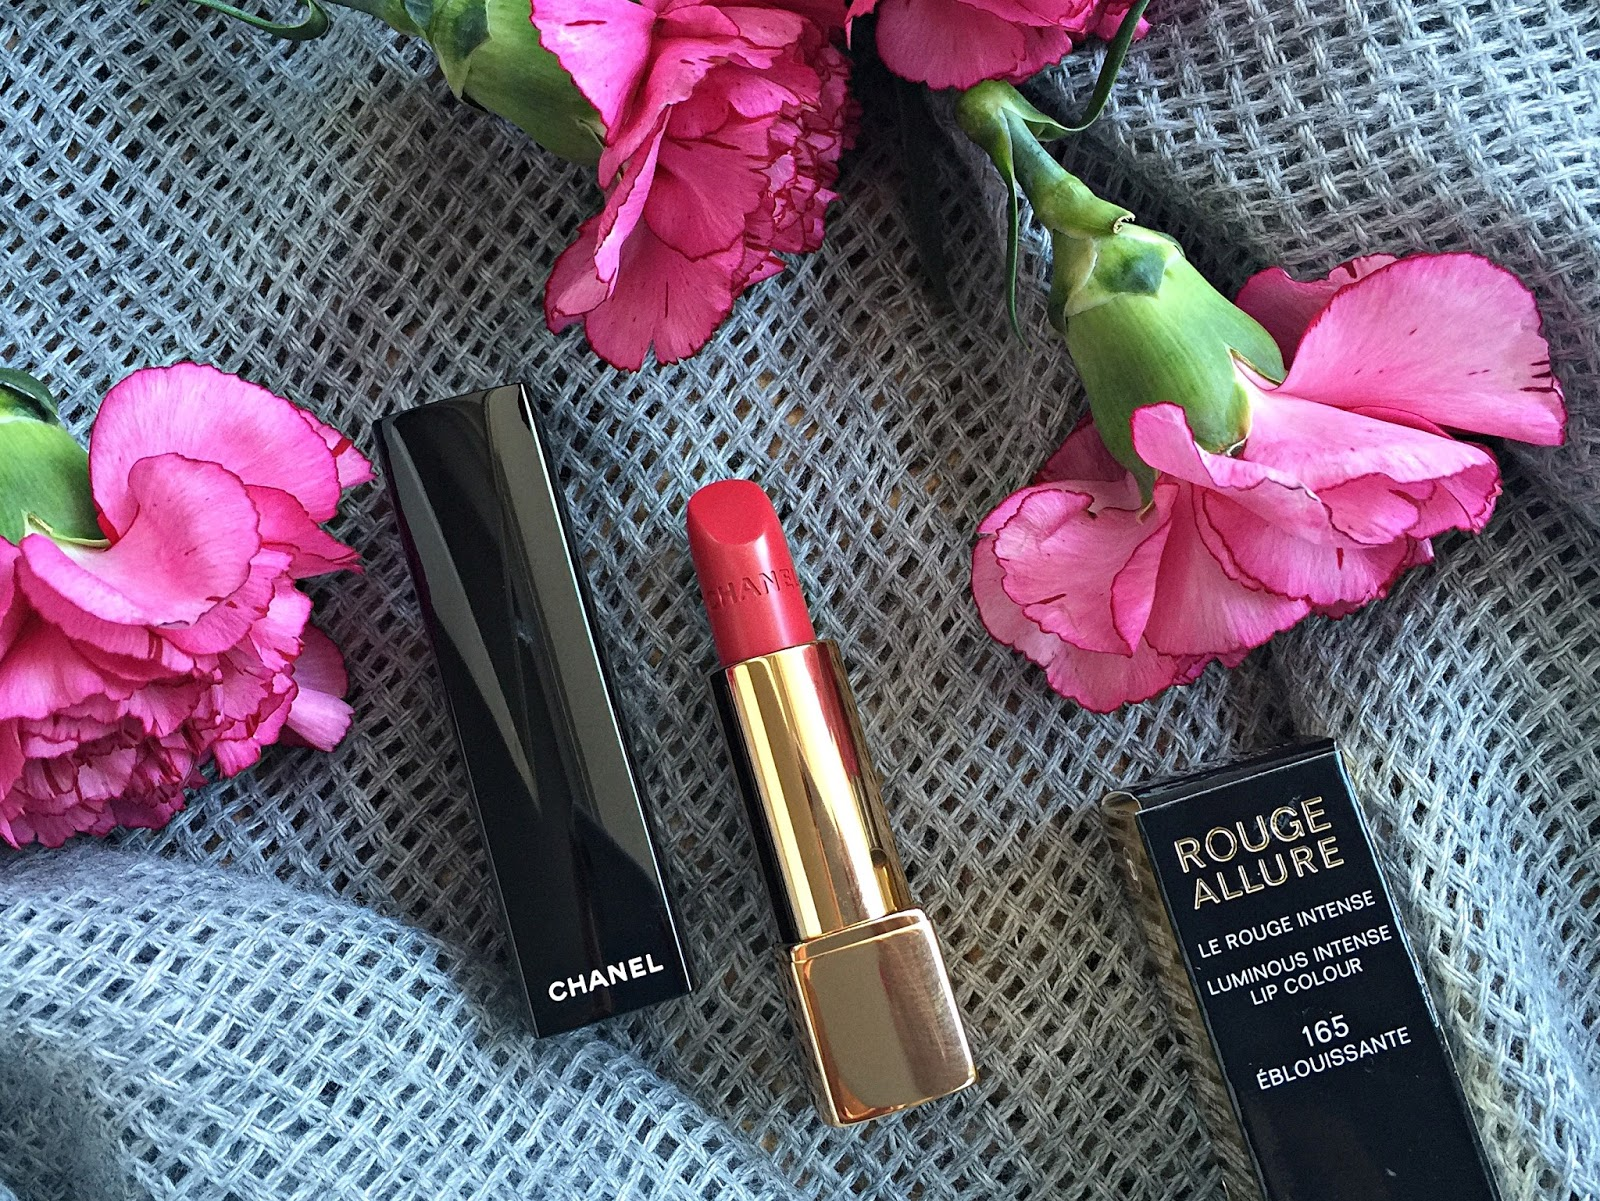 CHANEL ROUGE ALLURE - 165 EBLOUISSANTE